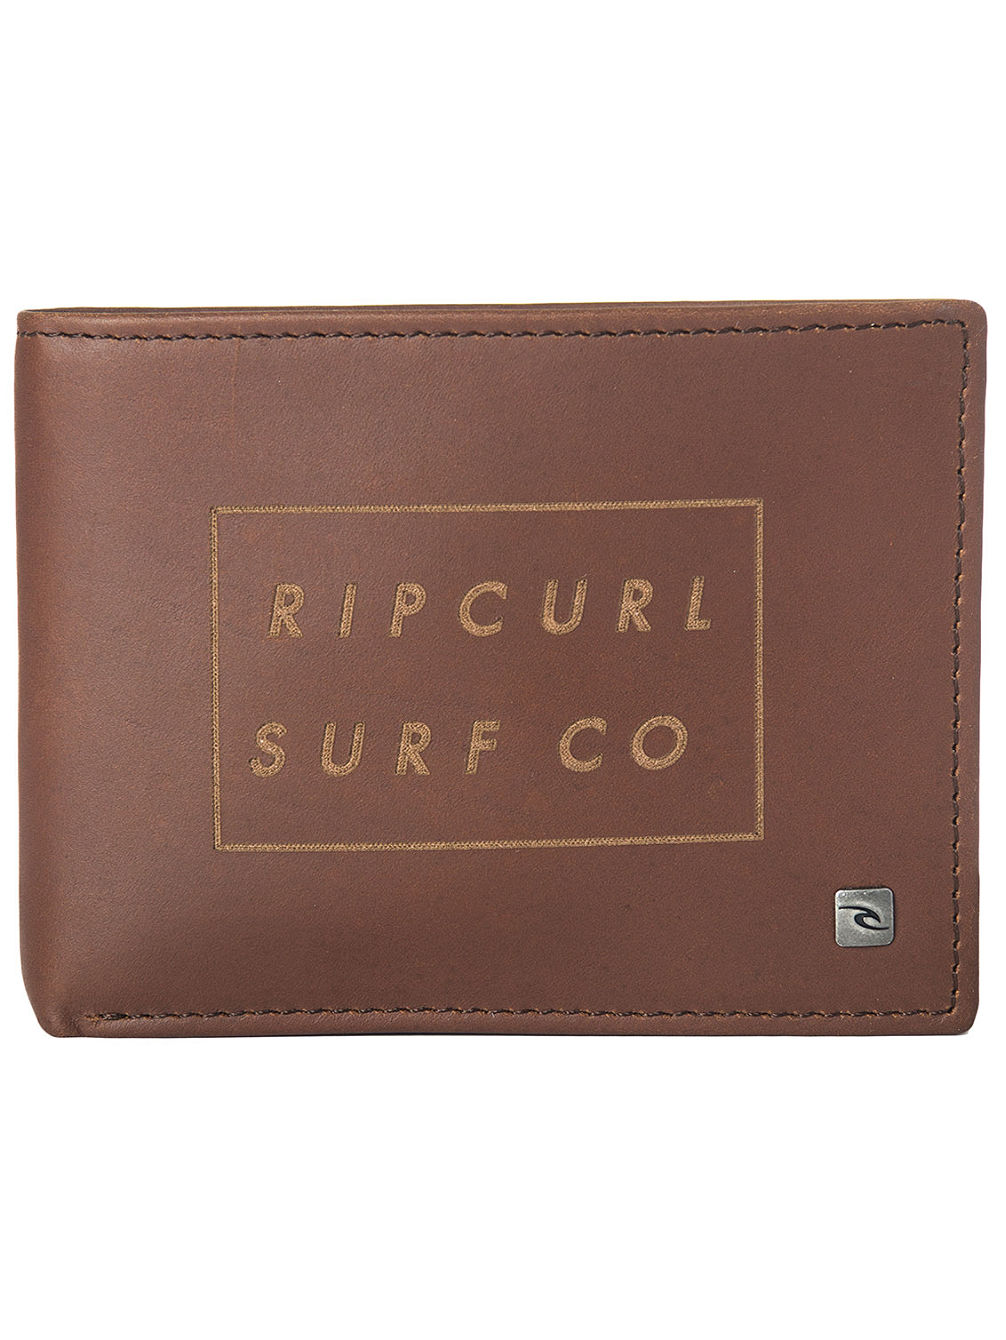 Surf Co RFID All Day Wallet